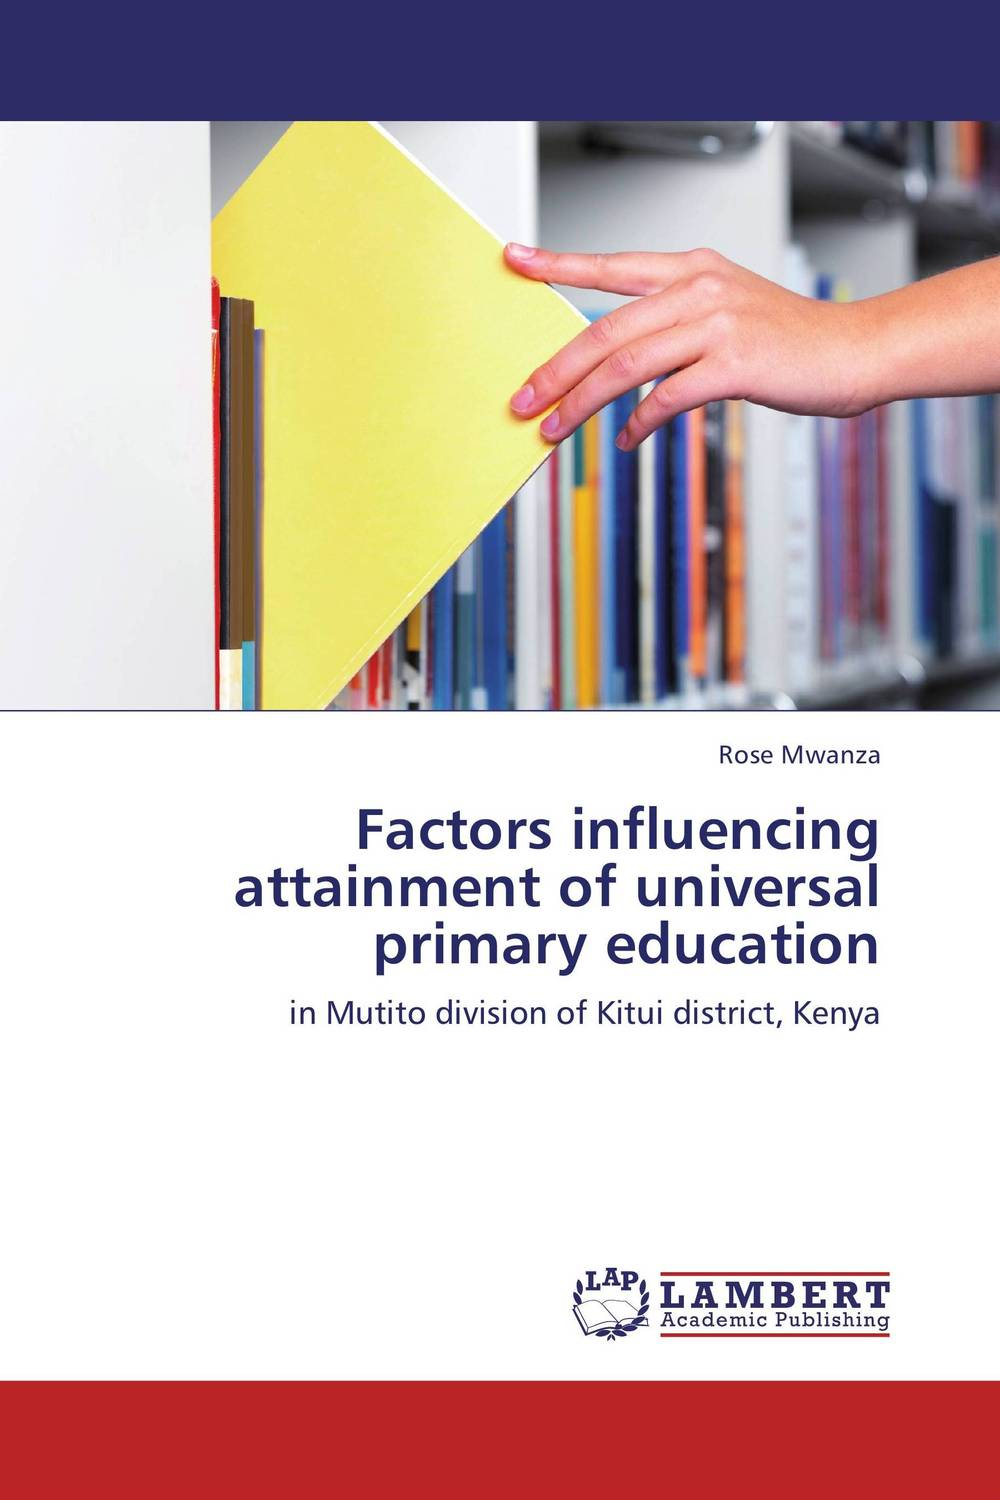 Factors influencing attainment of universal primary education factors influencing the growth of informal rental housing in swaziland